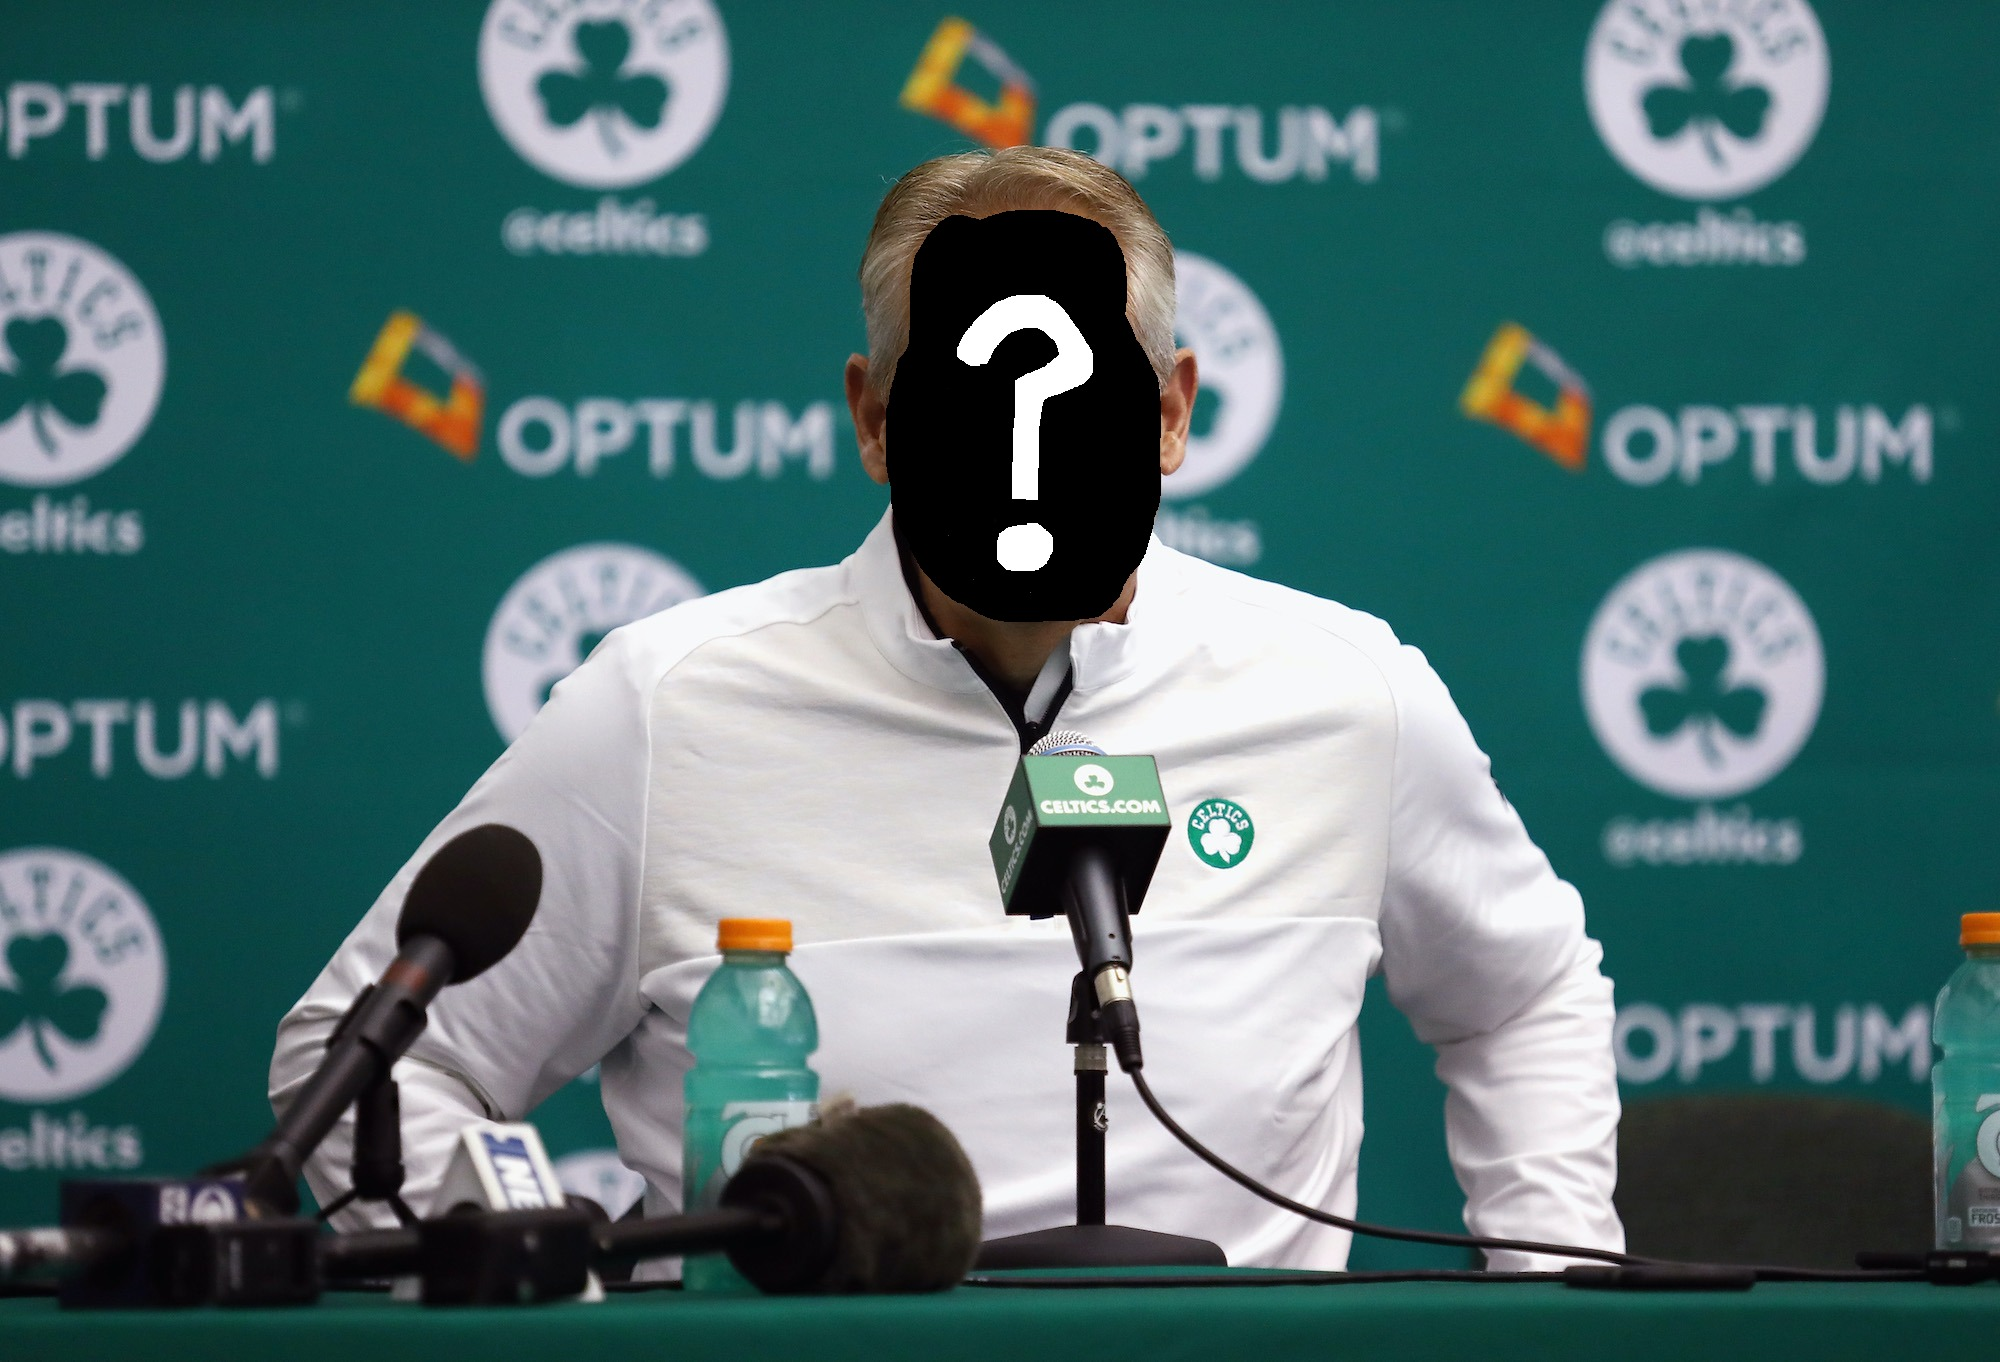 A mysterious, unknown NBA general manager, sitting in front of a Celtics backdrop and speaking into a Celtics-branded microphone.